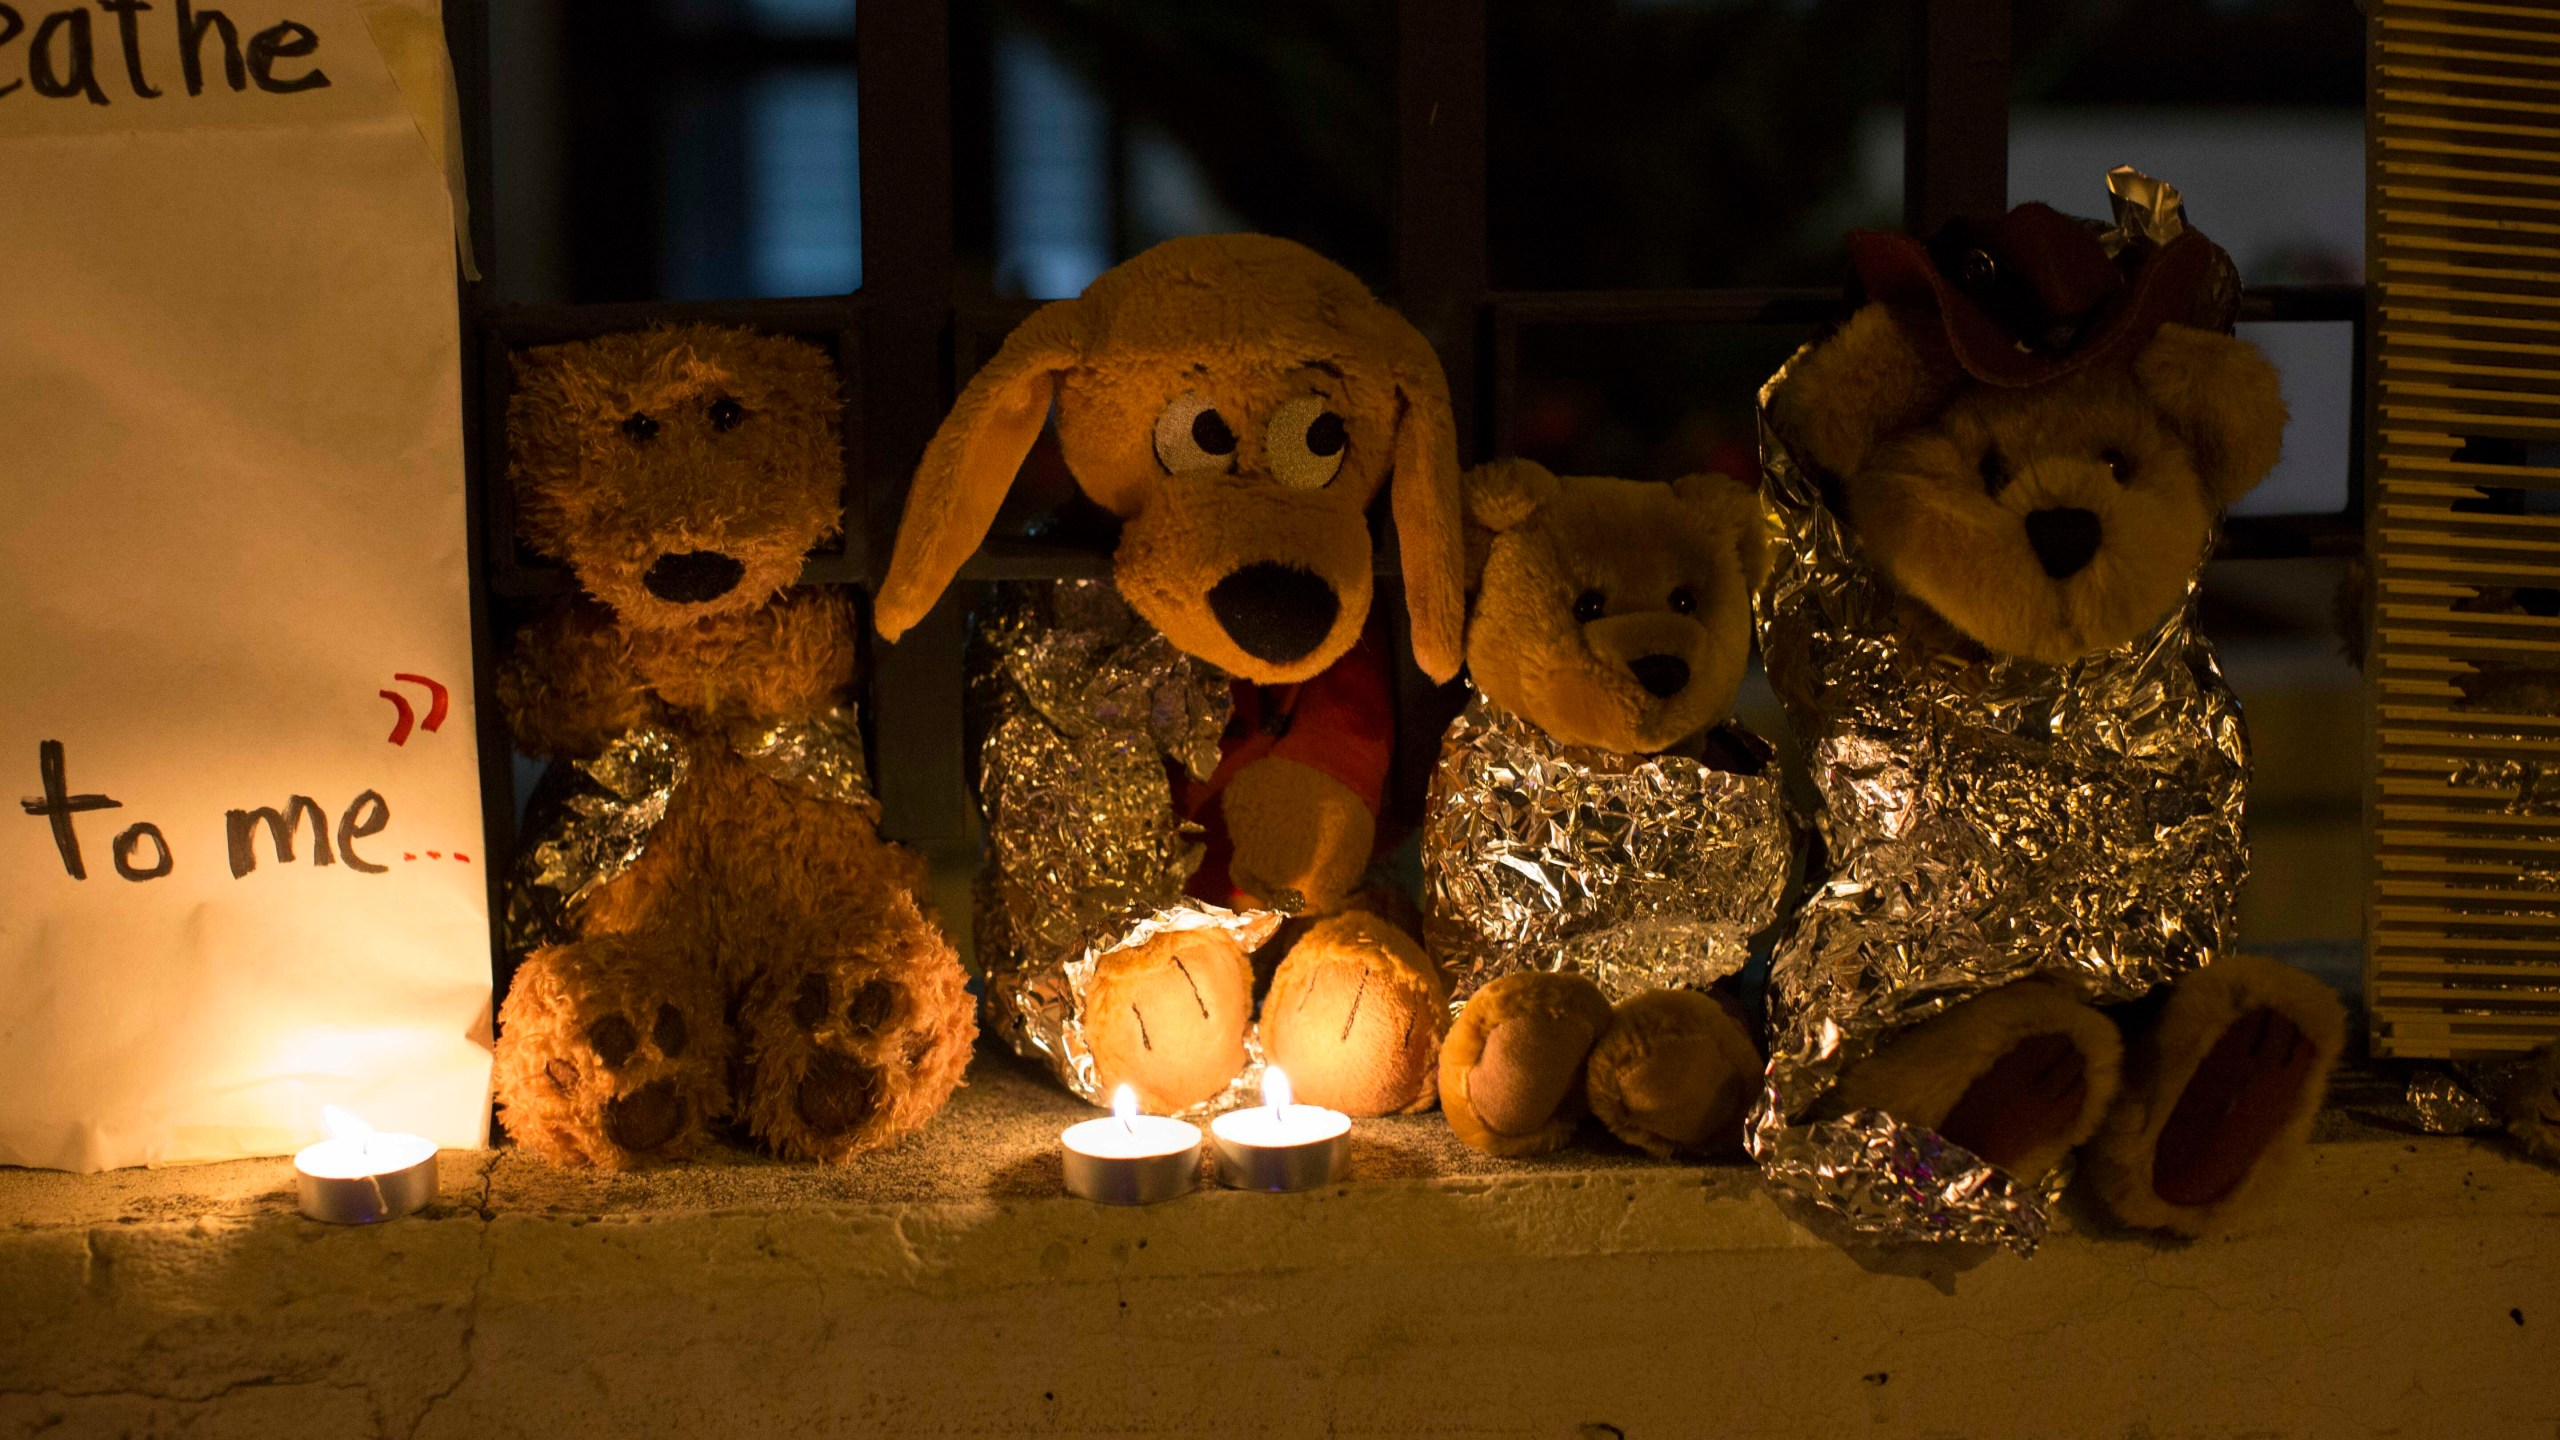 In this Wednesday, June 20, 2018, file photo, stuffed toy animals wrapped in aluminum foil representing migrant children separated from their families are displayed in protest in front of the United States embassy in Guatemala City. In a report released Tuesday, June 8, 2021, the Biden administration says it has identified more than 3,900 children separated at the border under former President Donald Trump's 'zero-tolerance' policy on illegal crossings. (AP Photo/Luis Soto, File)